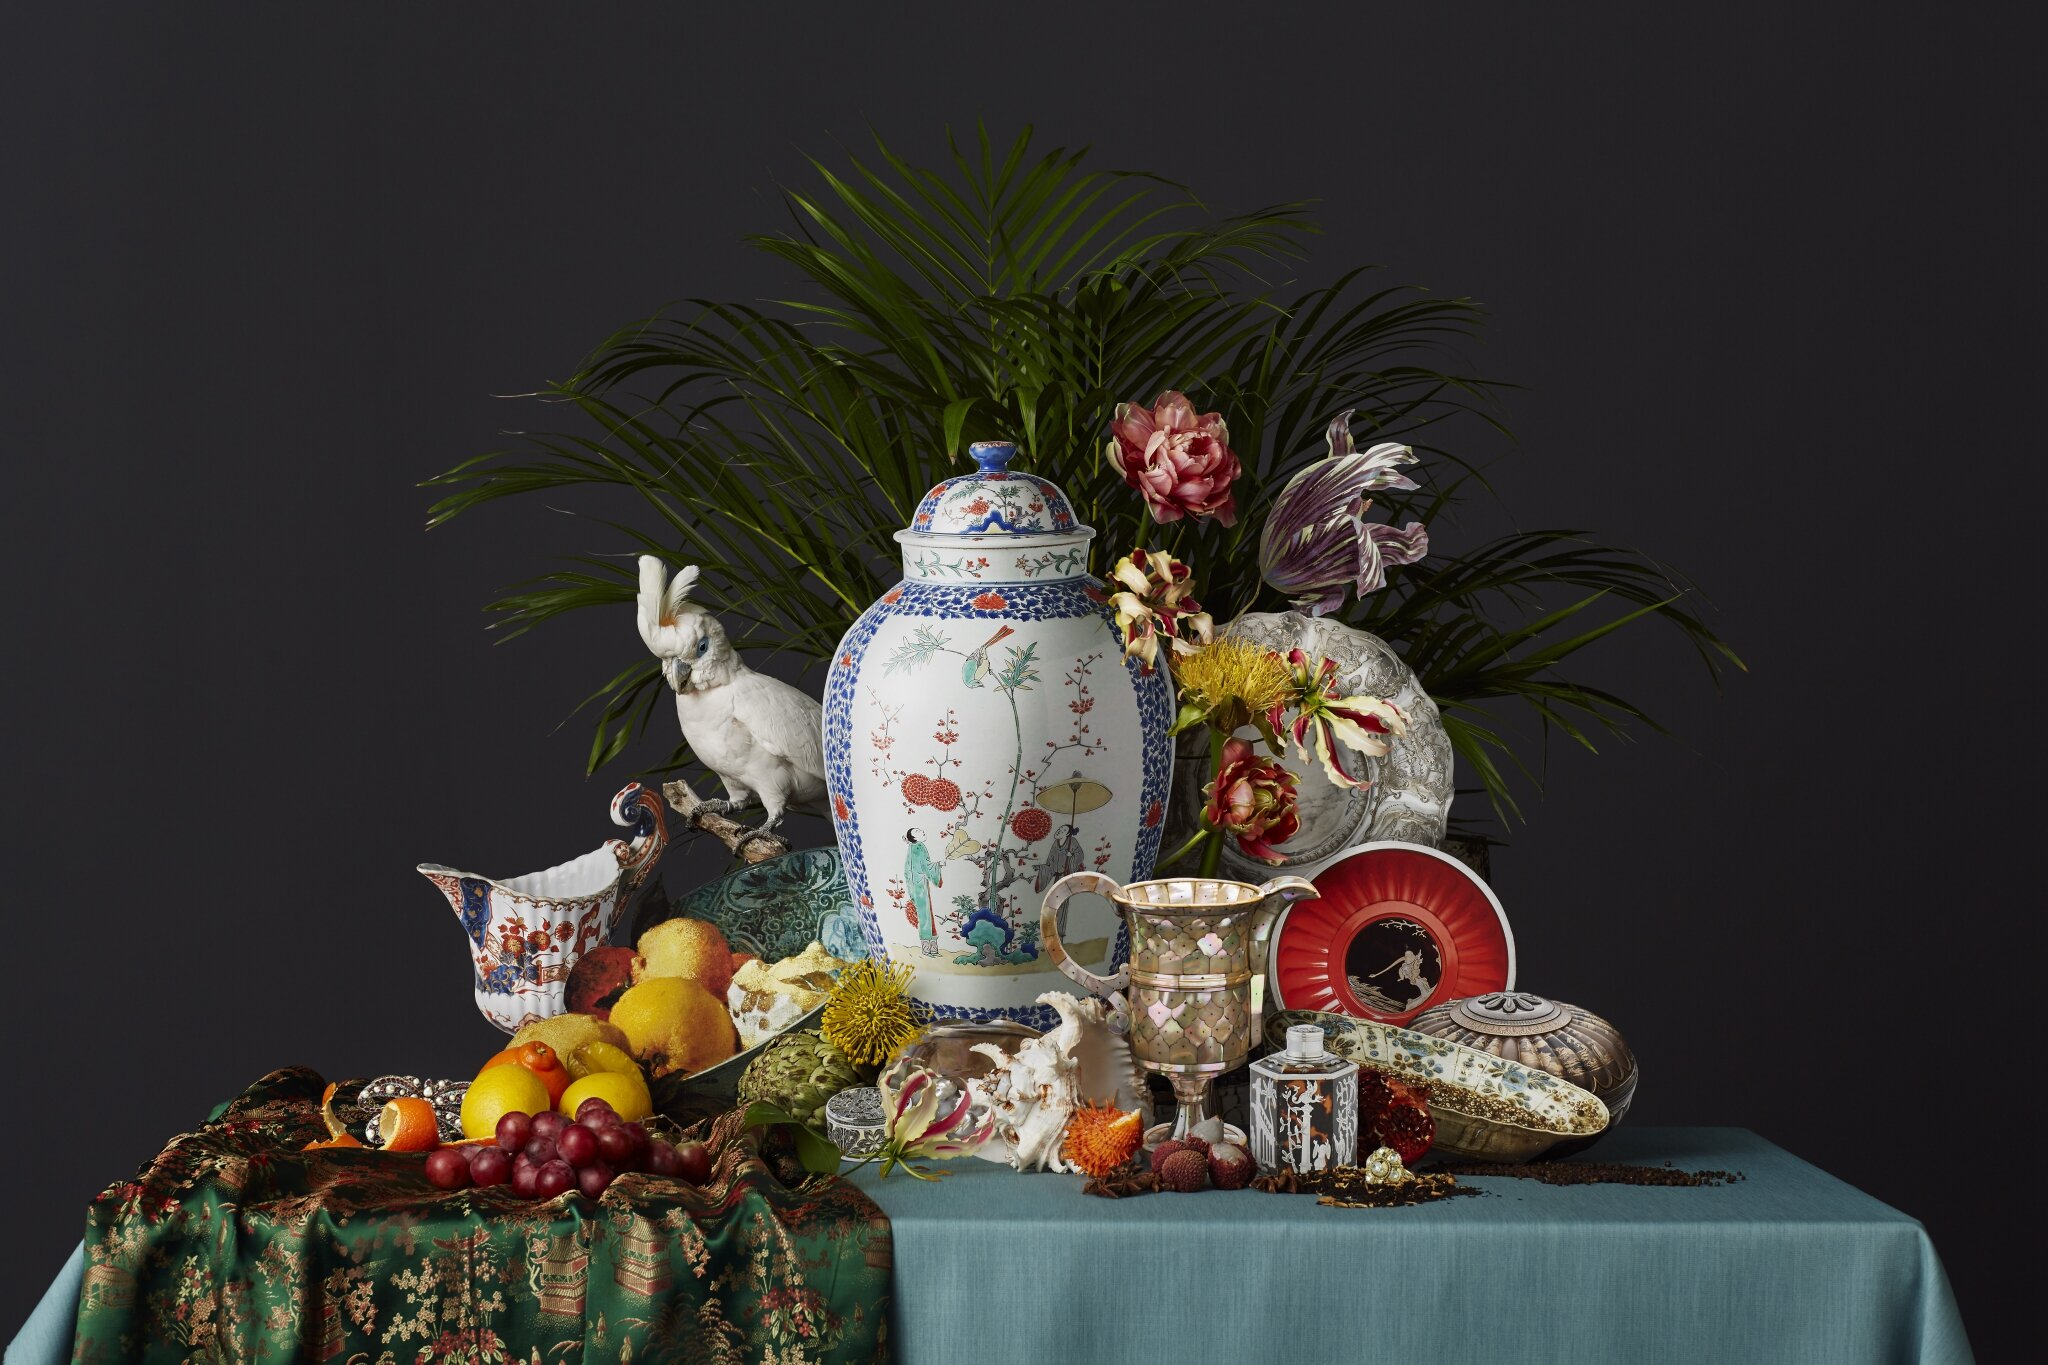 The Rijksmuseum presents an exhibition of Asian treasure in Dutch interiors